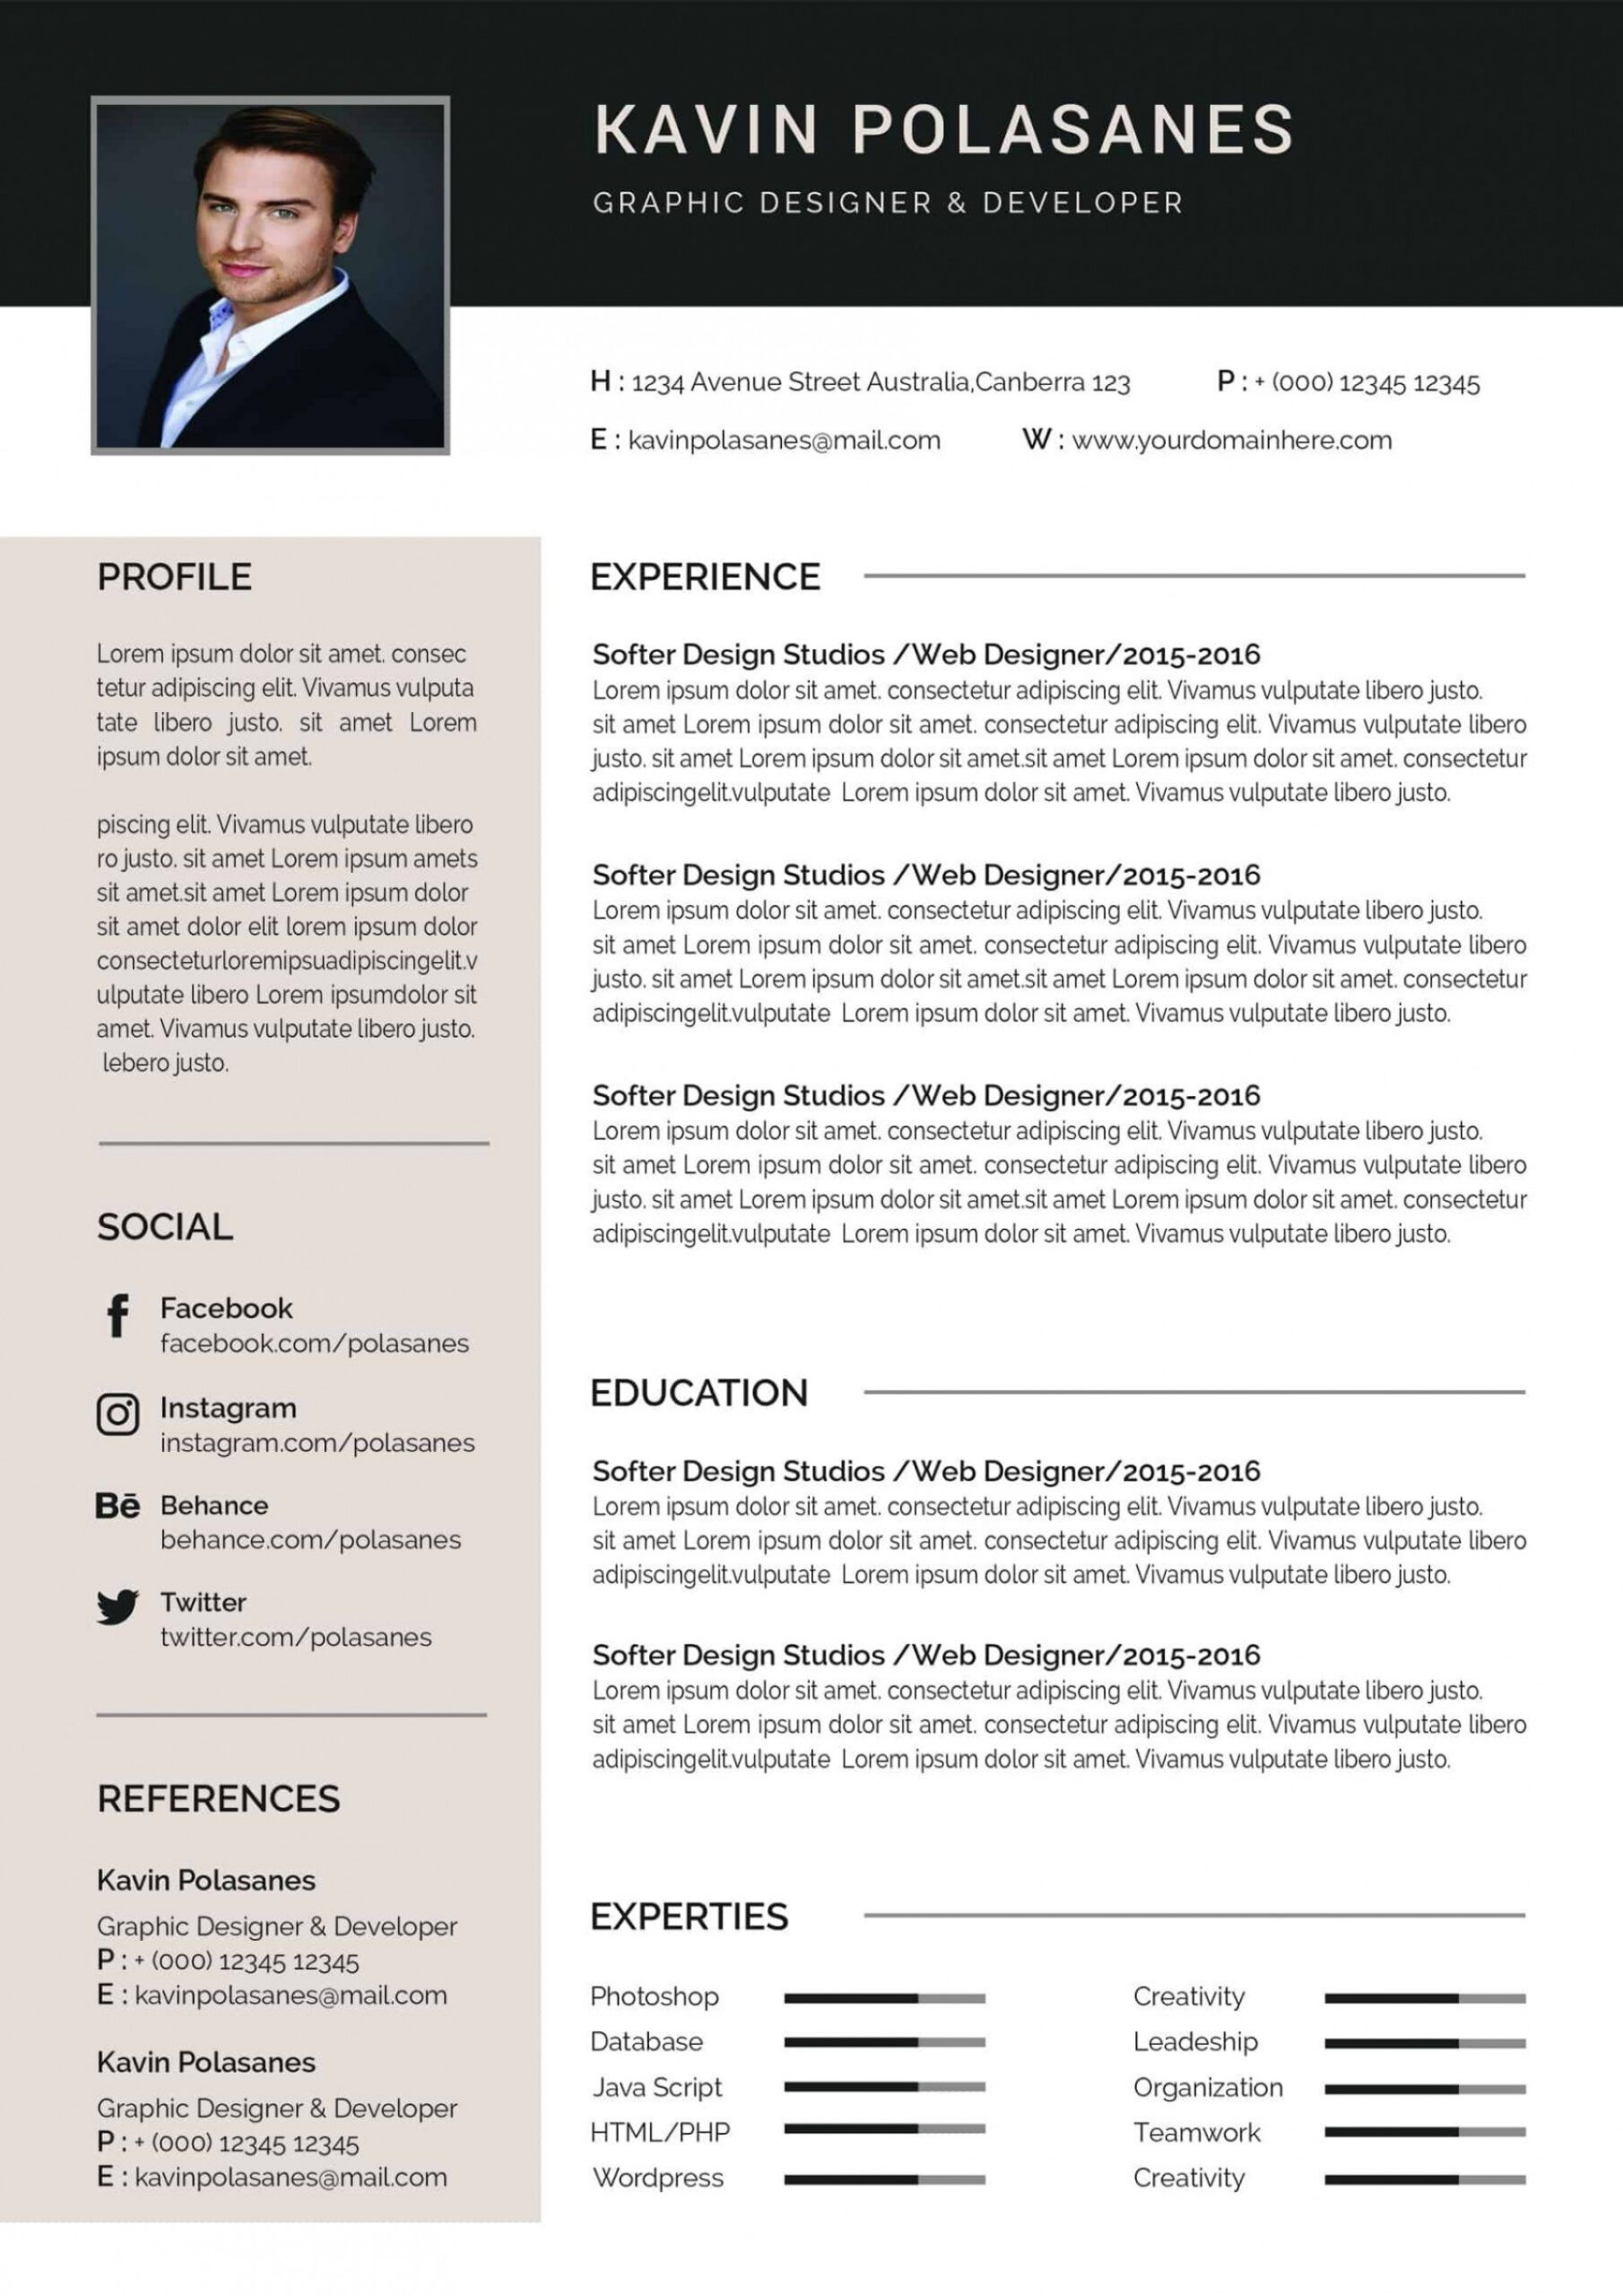 functional resume template word addictionary core for best templates image format ideas Resume Core Functional Resume Template For Word